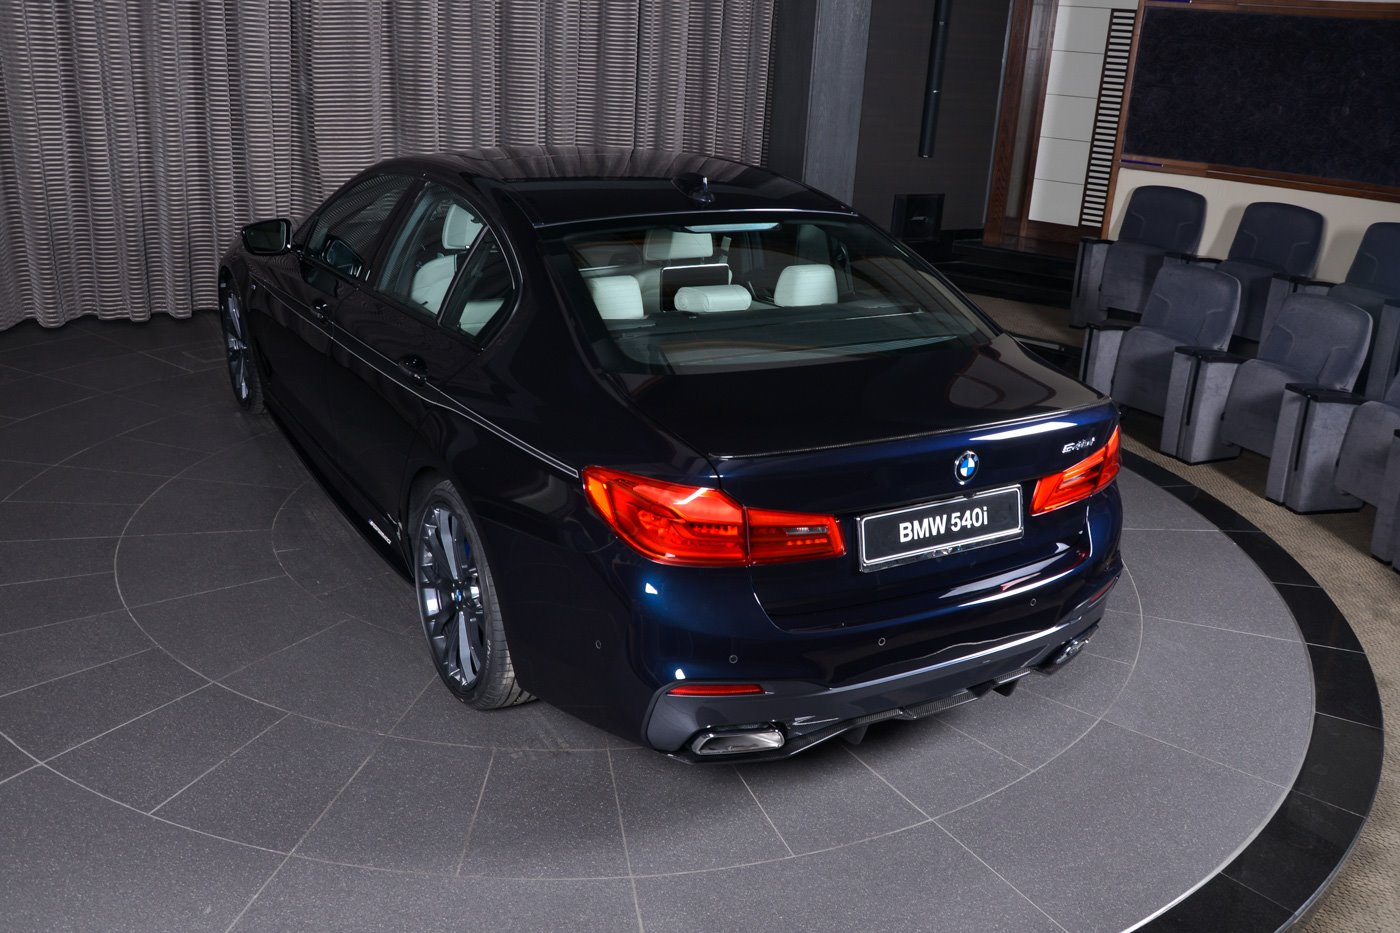 bmw-540i-with-m-performance-carbon-kit-sports-carbon-black-paint_10.jpg